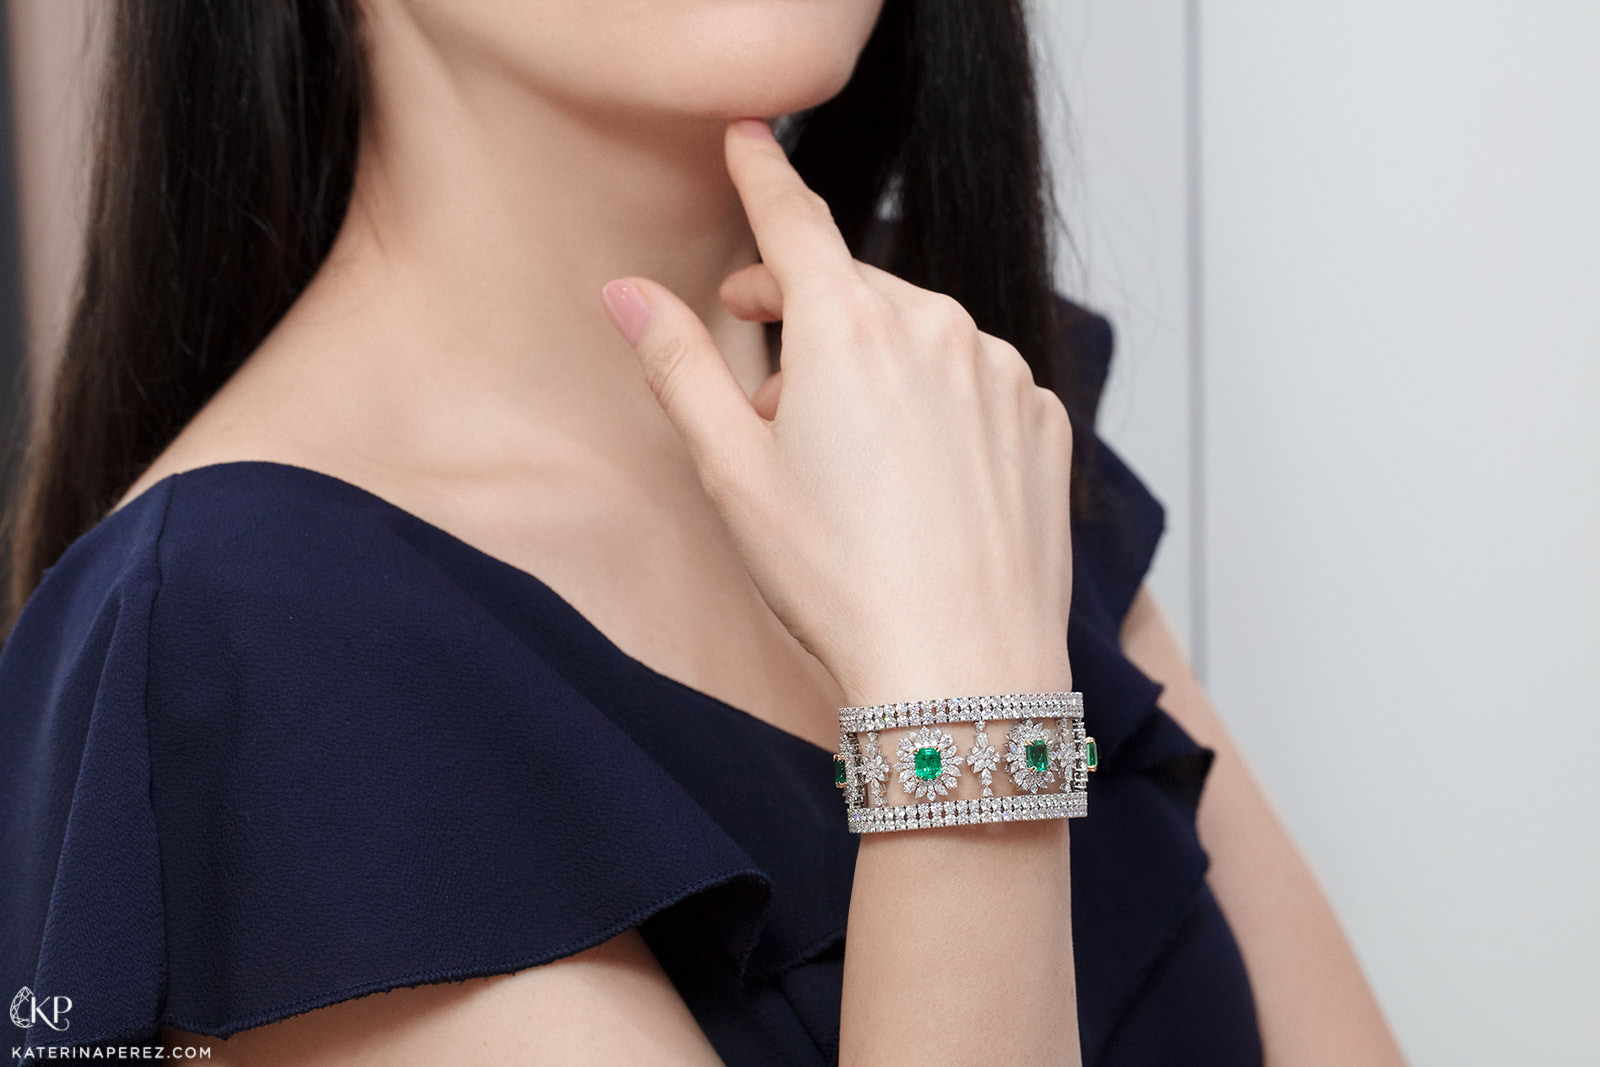 Sunita Nahata 'Regalia' collection bracelet with 8.52ct Zambian emeralds and 35.53ct diamonds in 18k white gold